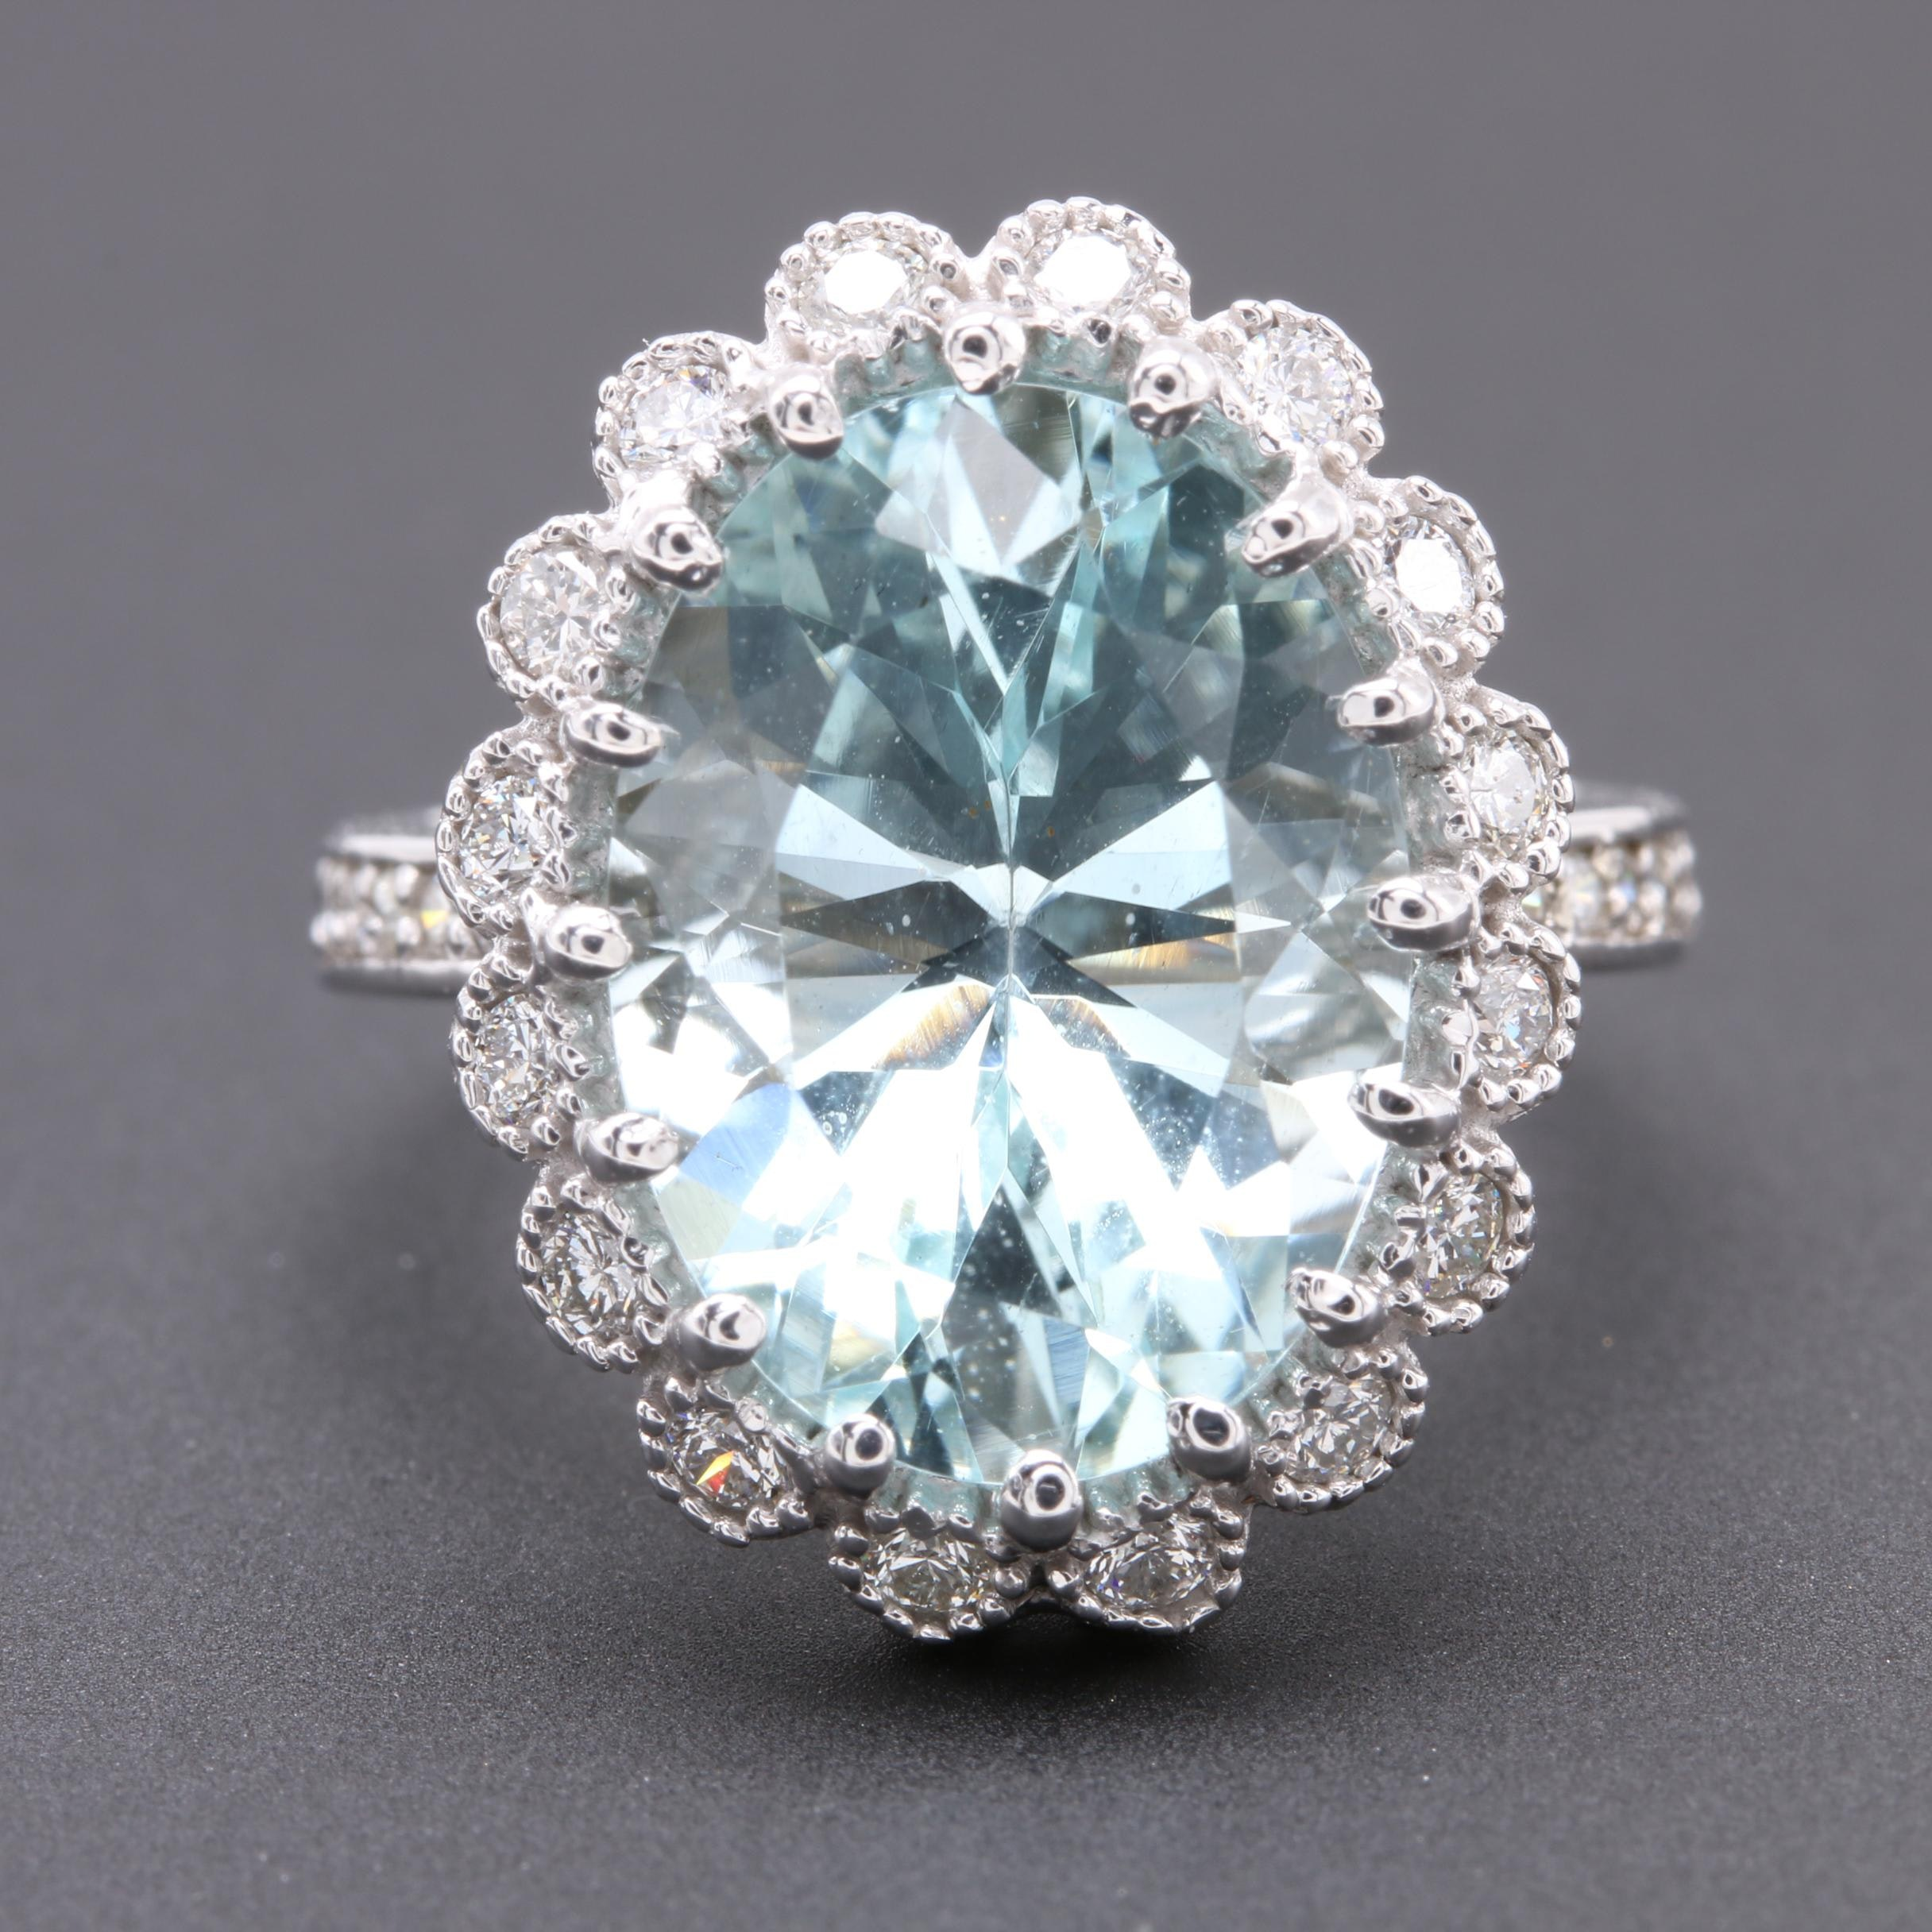 14K White Gold 6.51 CT Aquamarine and Diamond Ring